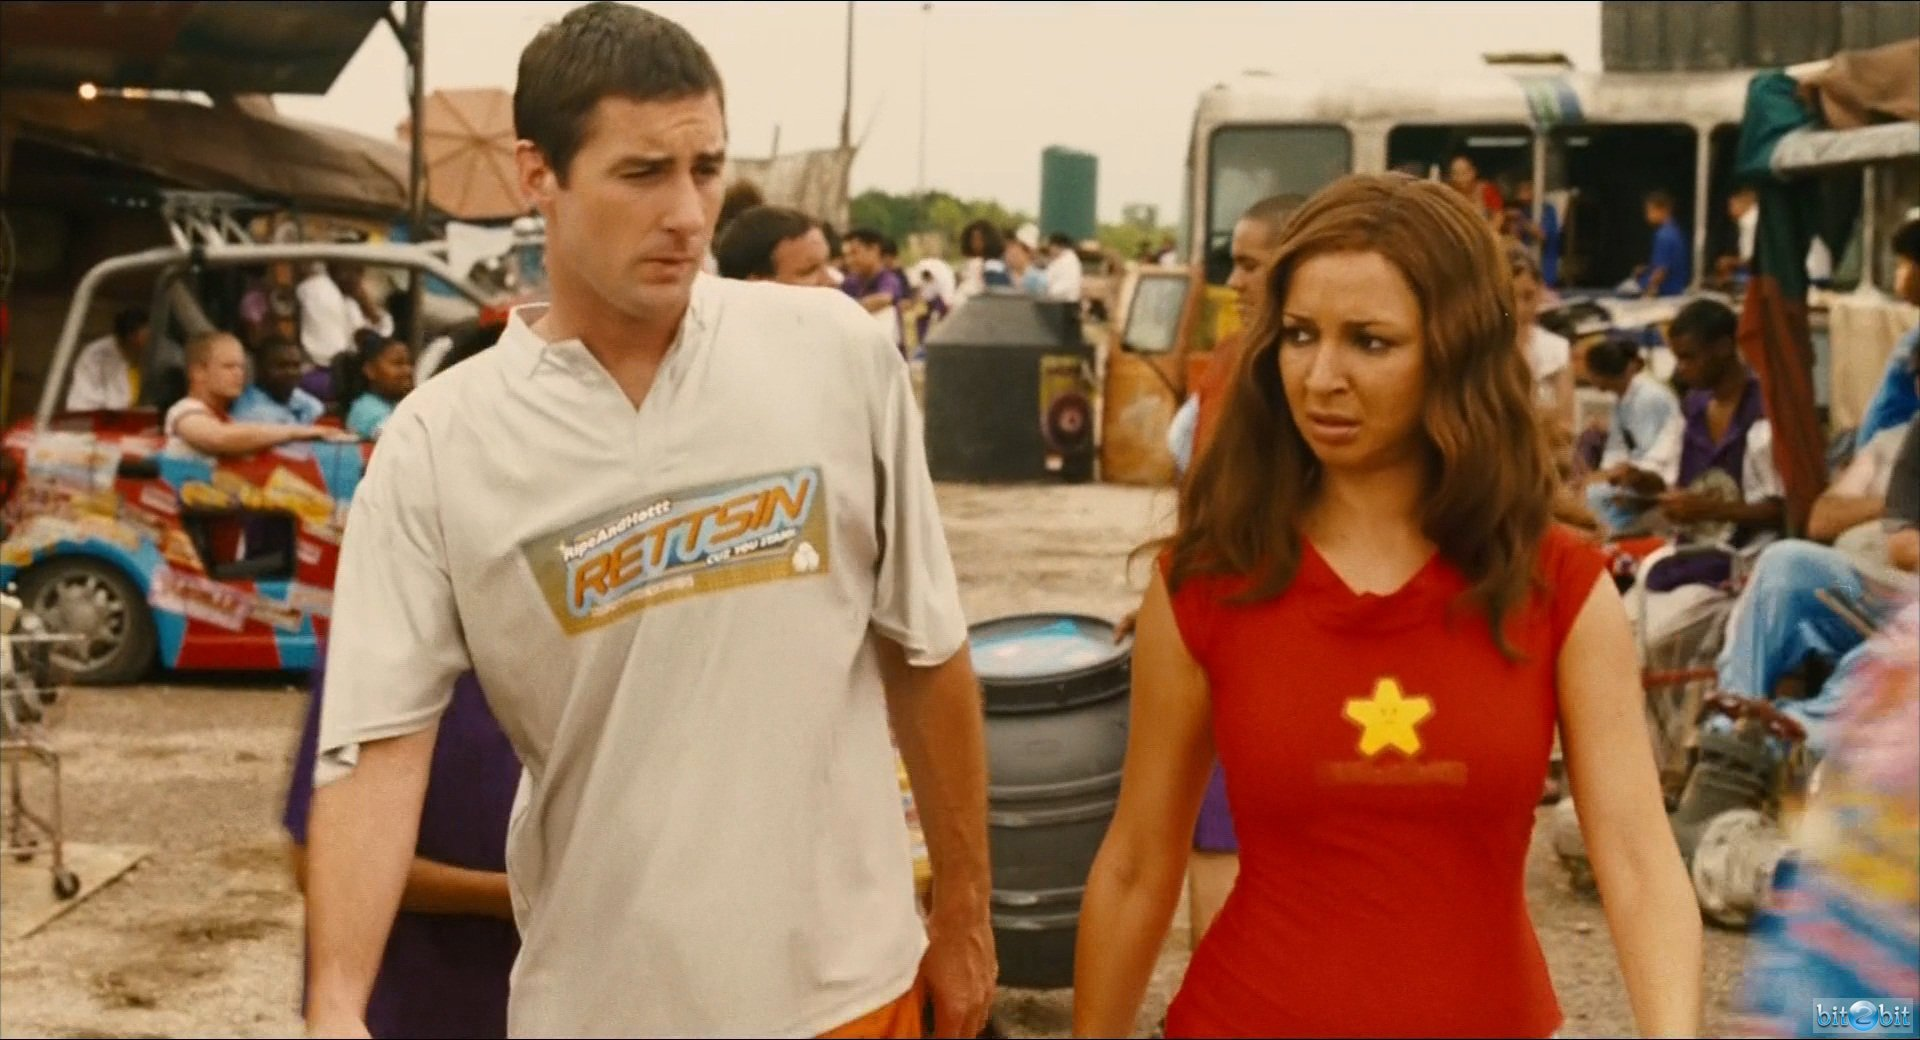 Idiocracy Characters Awesome tv/ - television & film » thread #94234384